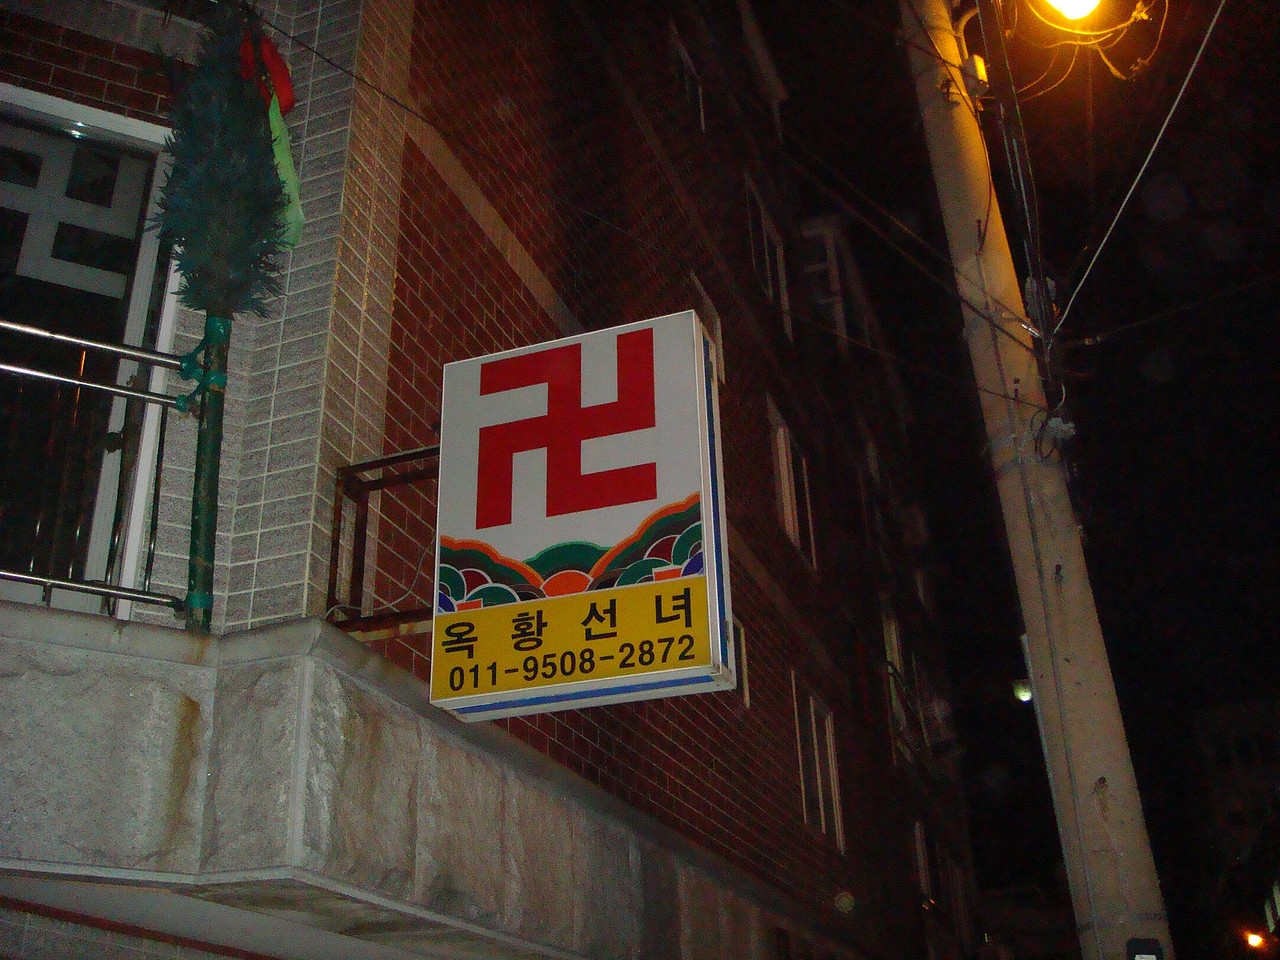 Fortune teller sign spotted in Busan, South Korea